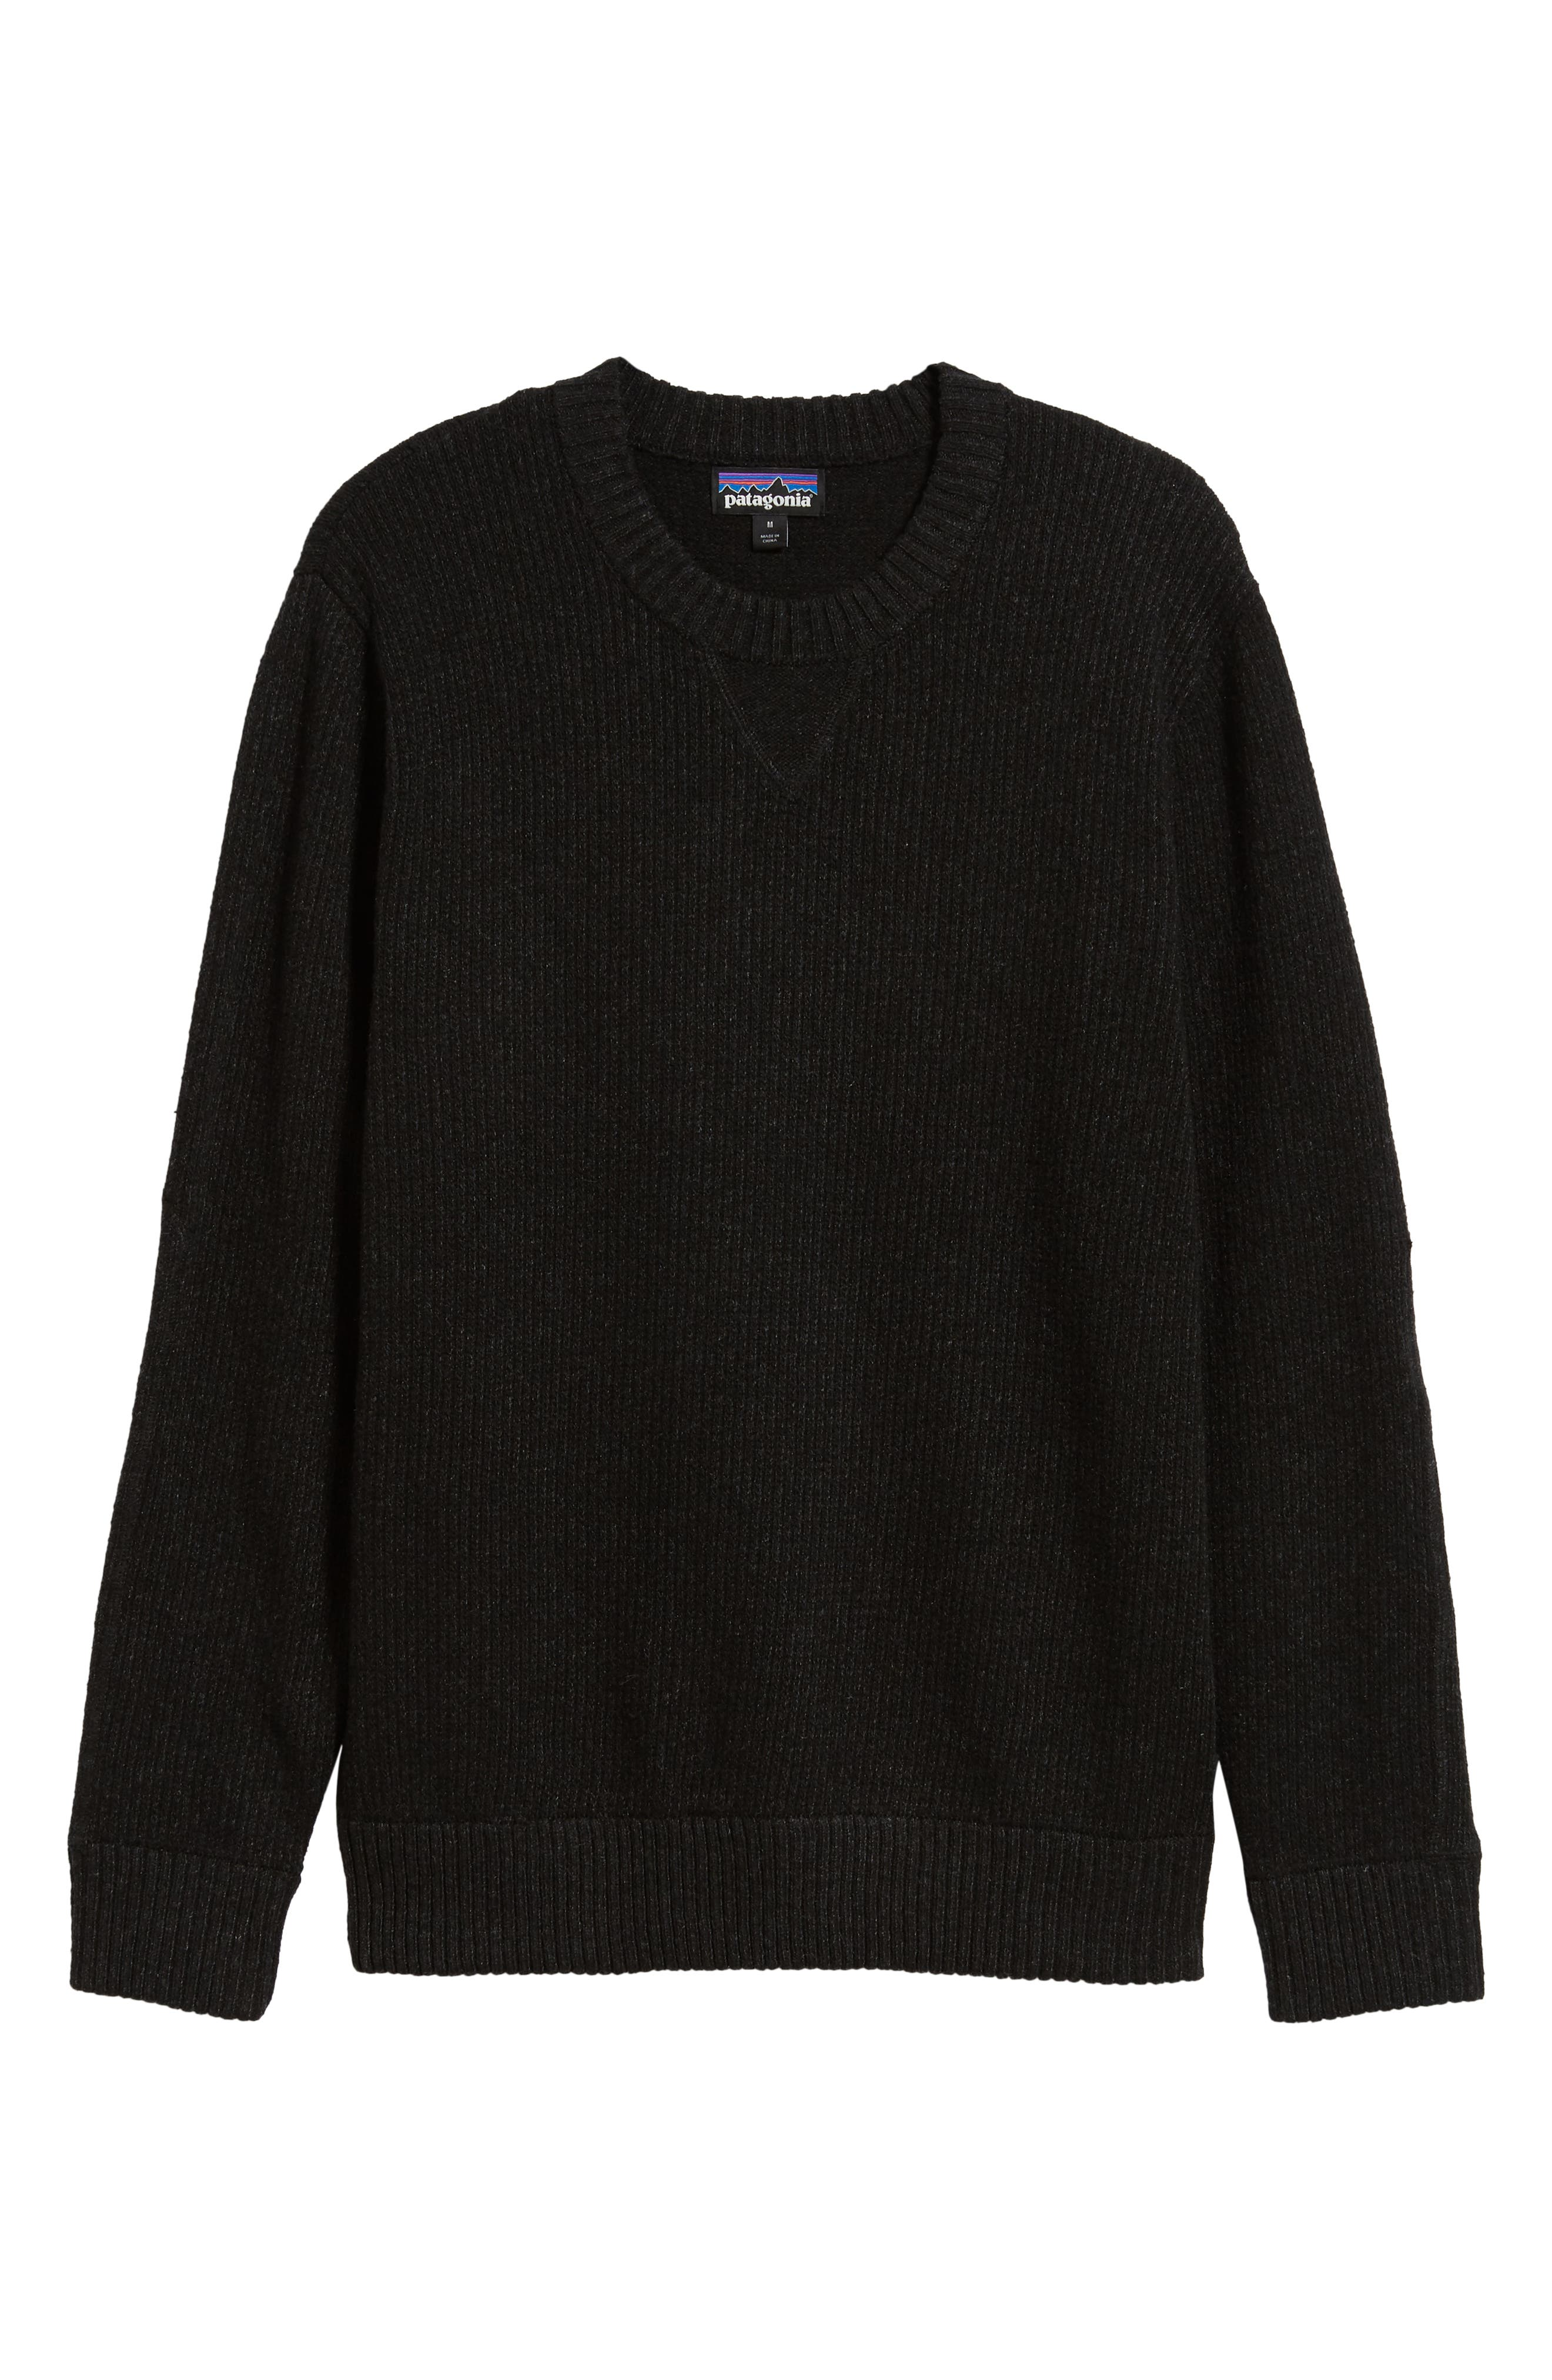 Off Country Crewneck Sweater,                             Alternate thumbnail 6, color,                             020